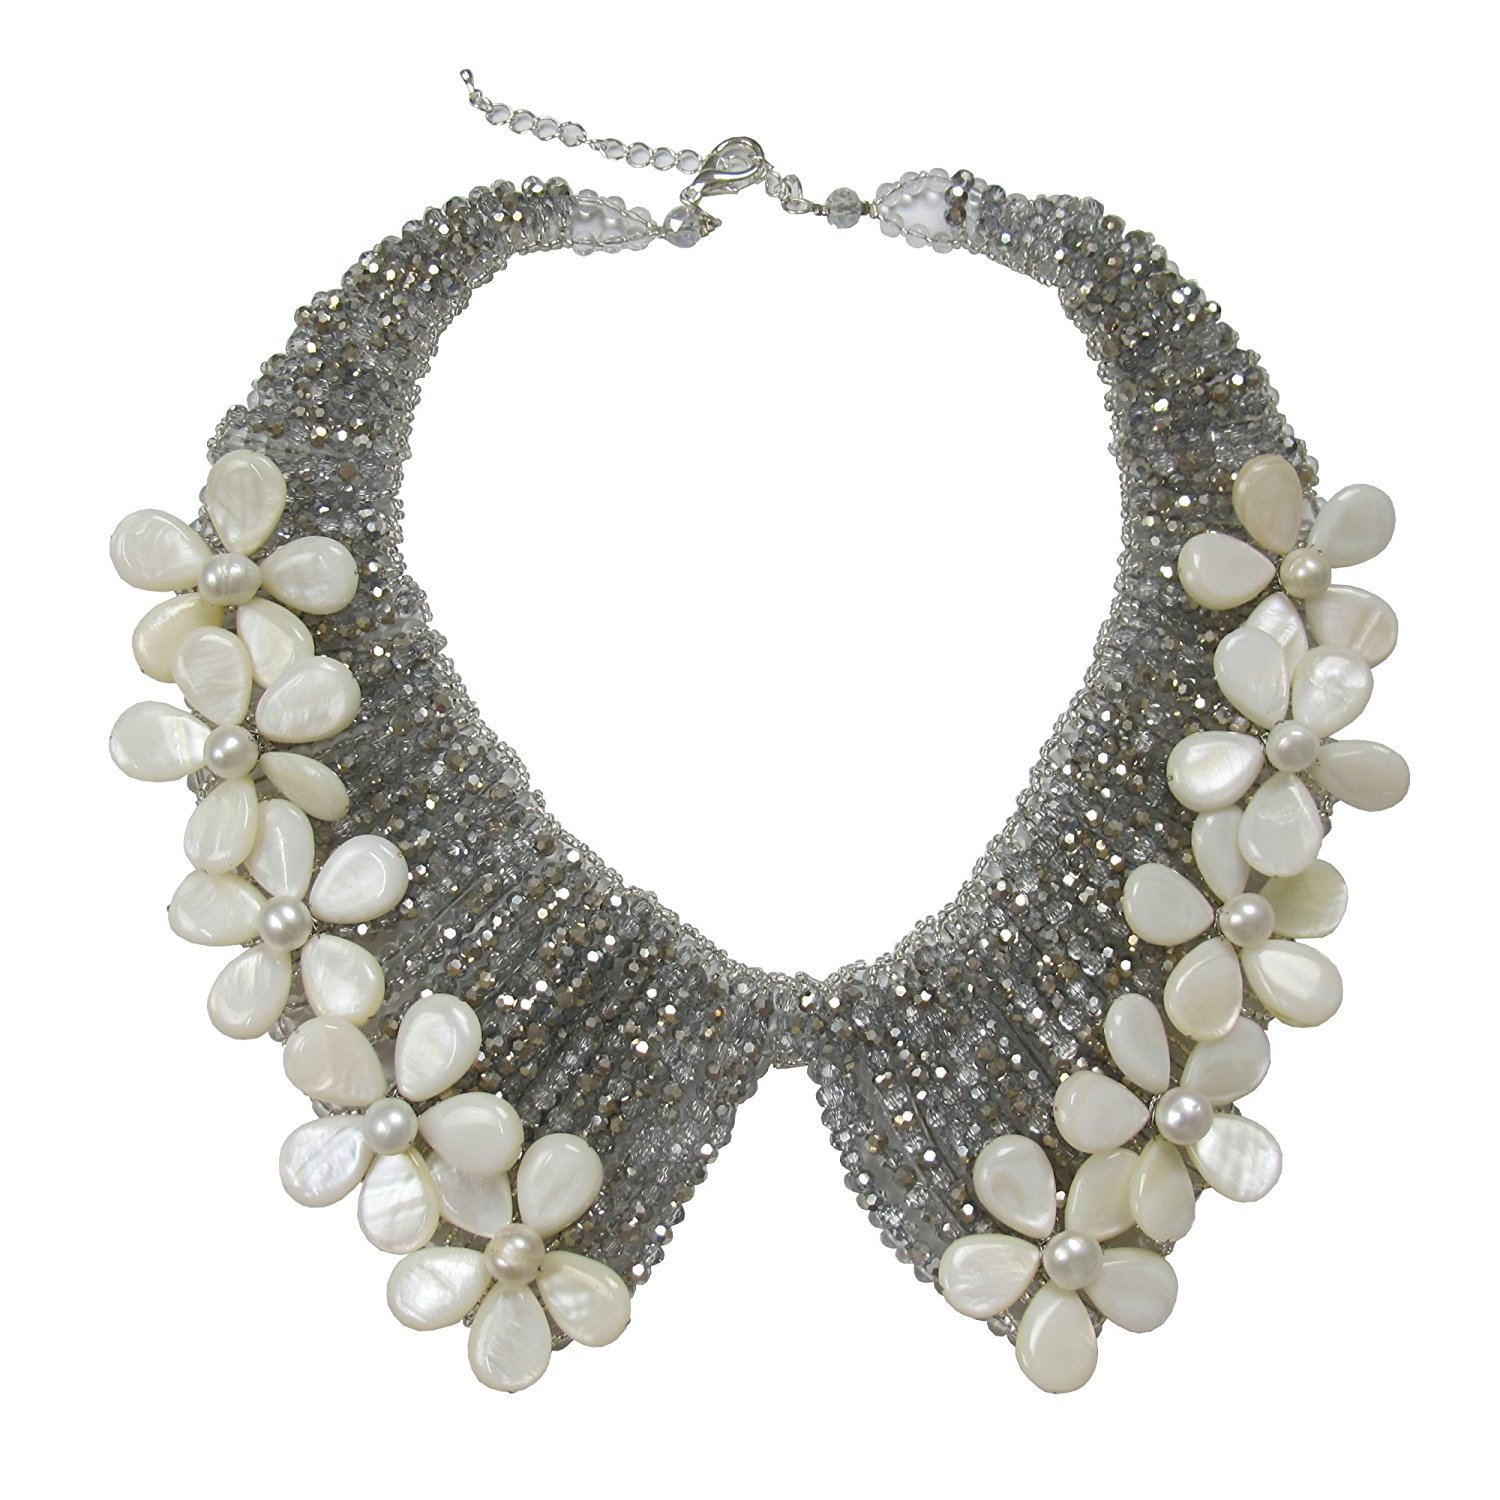 ec411d71f Women Fsmiling Vintage Gold Tone Collar Chain Sparkly Crystal Choker  Necklace for Party Collars